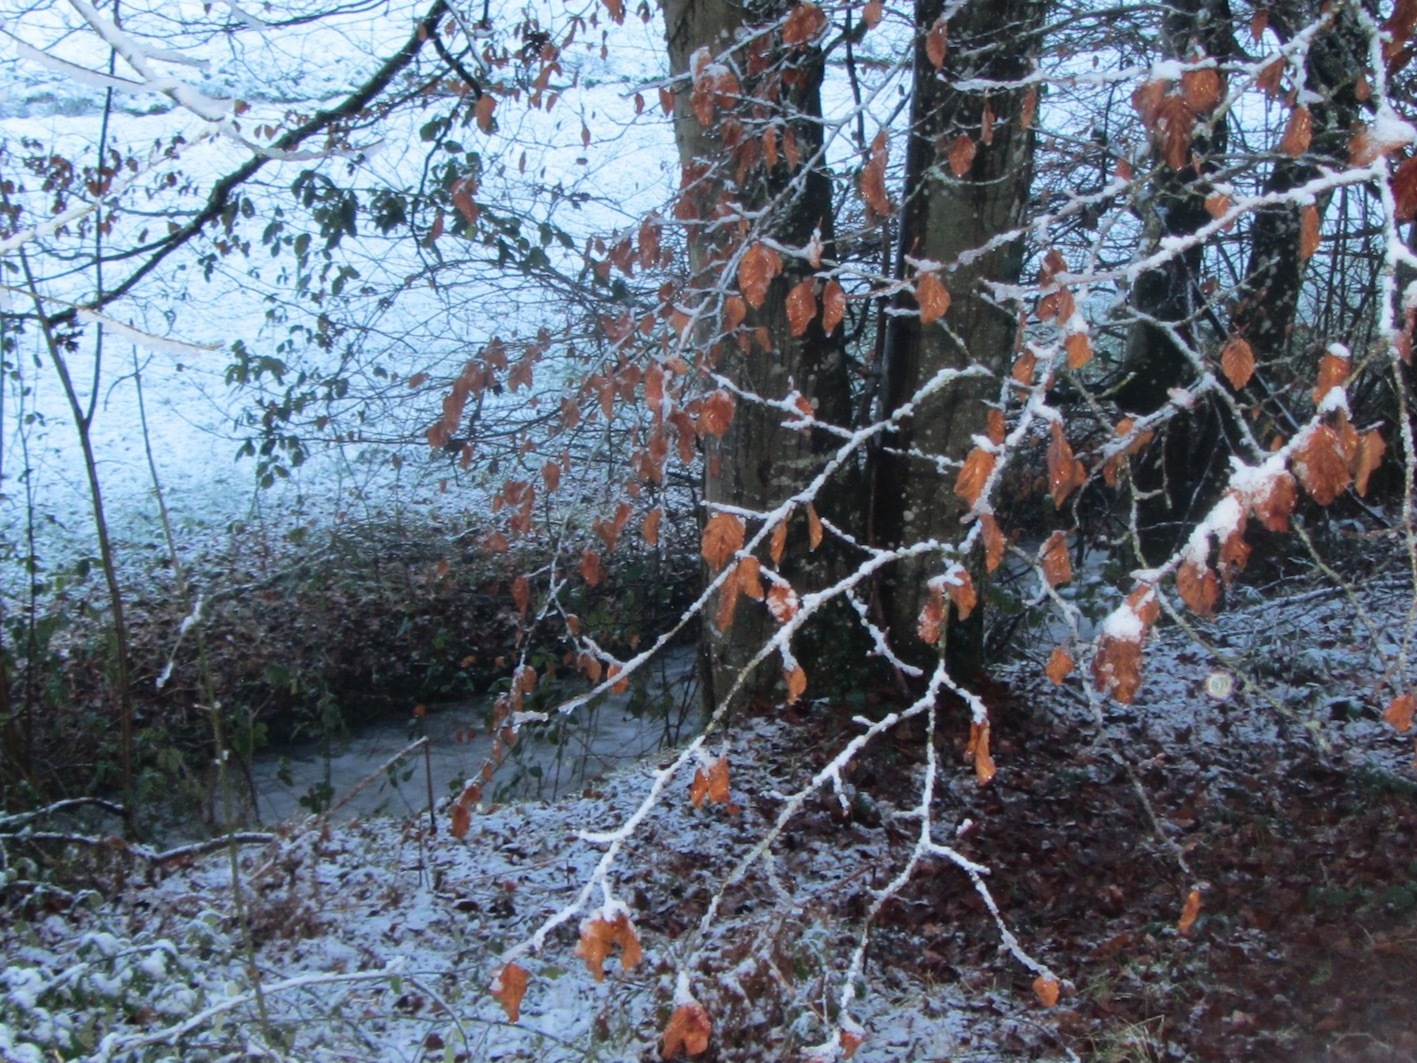 autumn drifts into winter at Le Choisel, Normandy, France